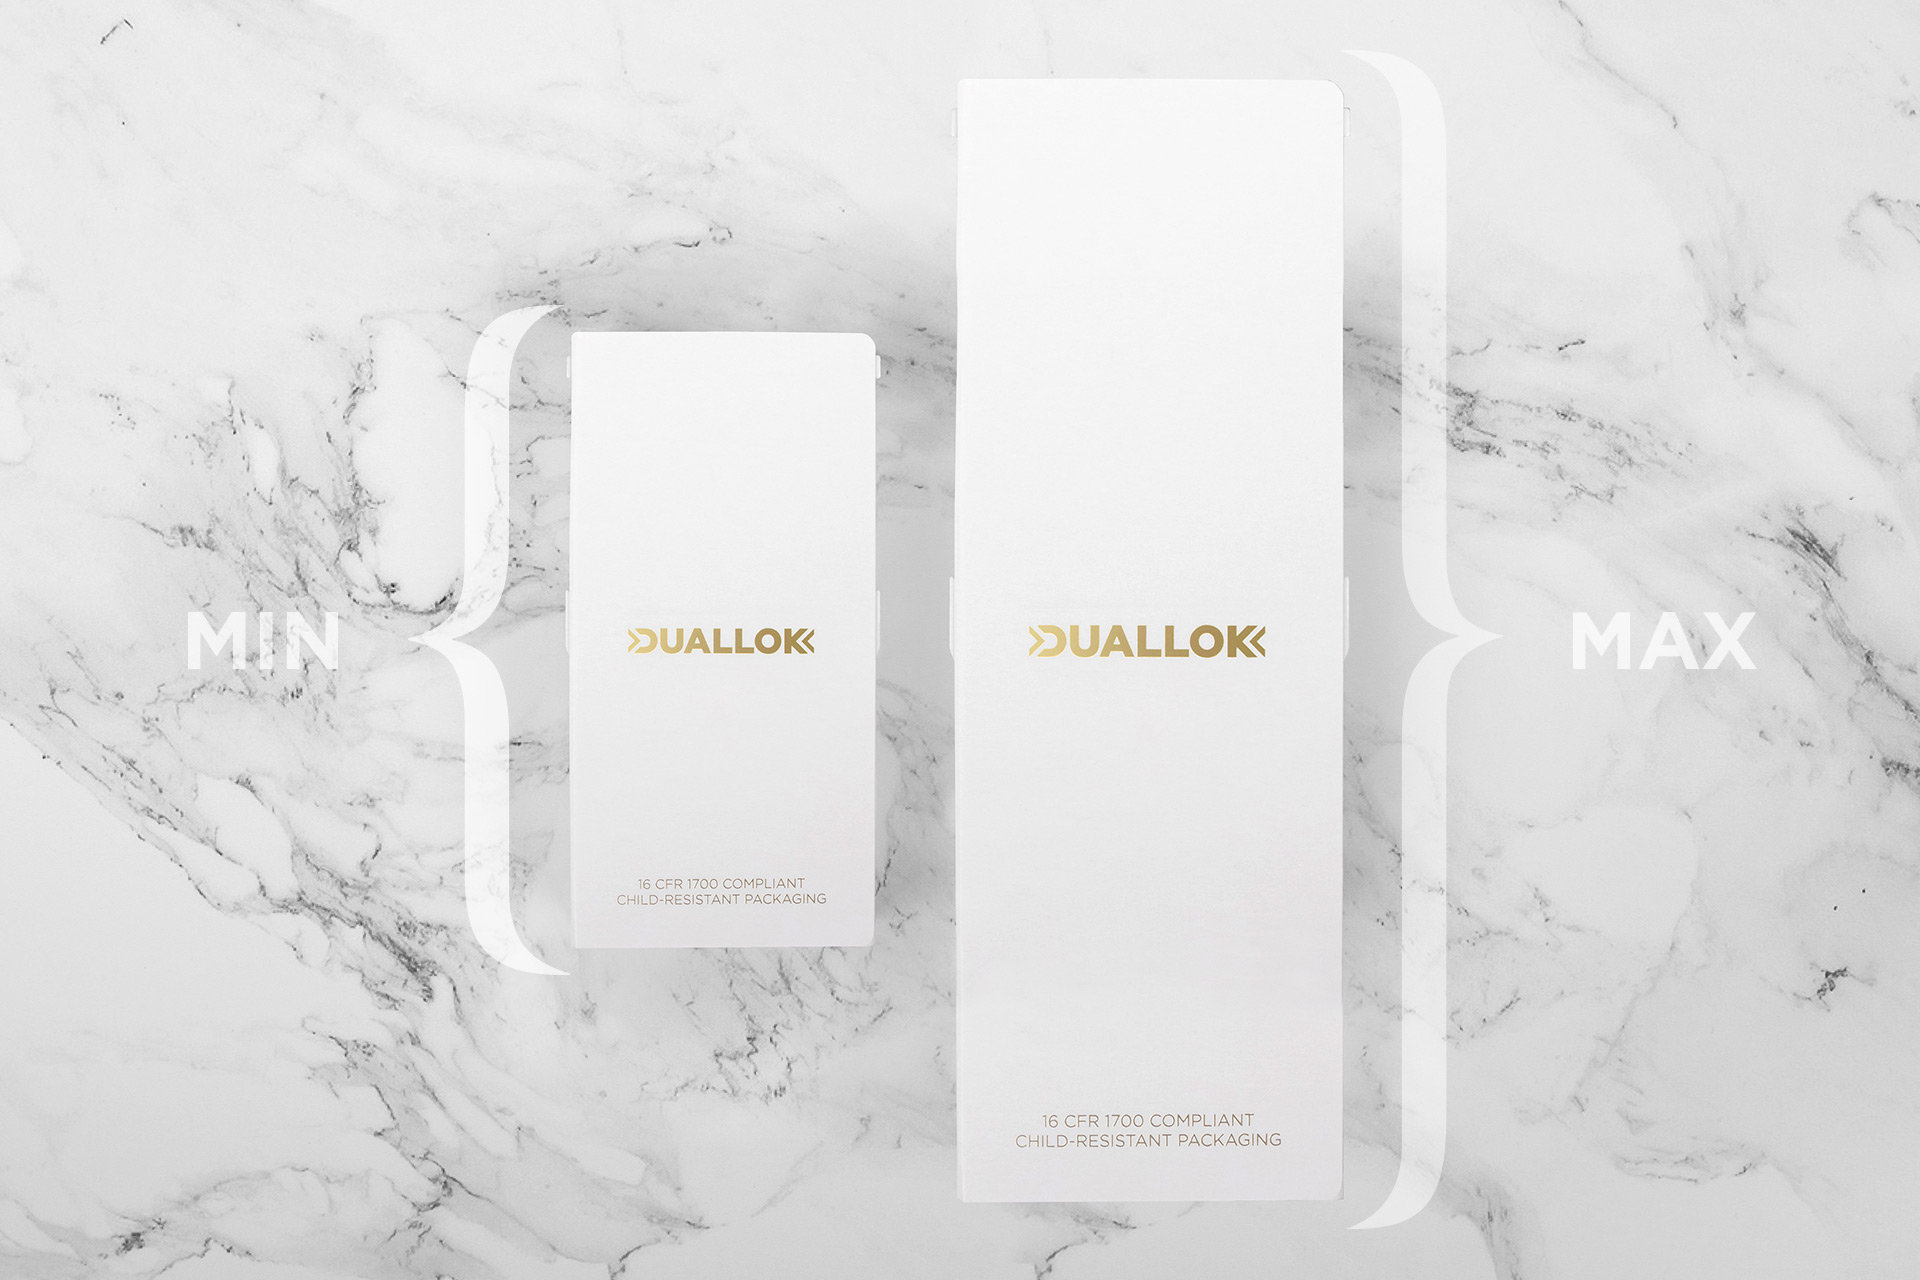 Duallok packaging